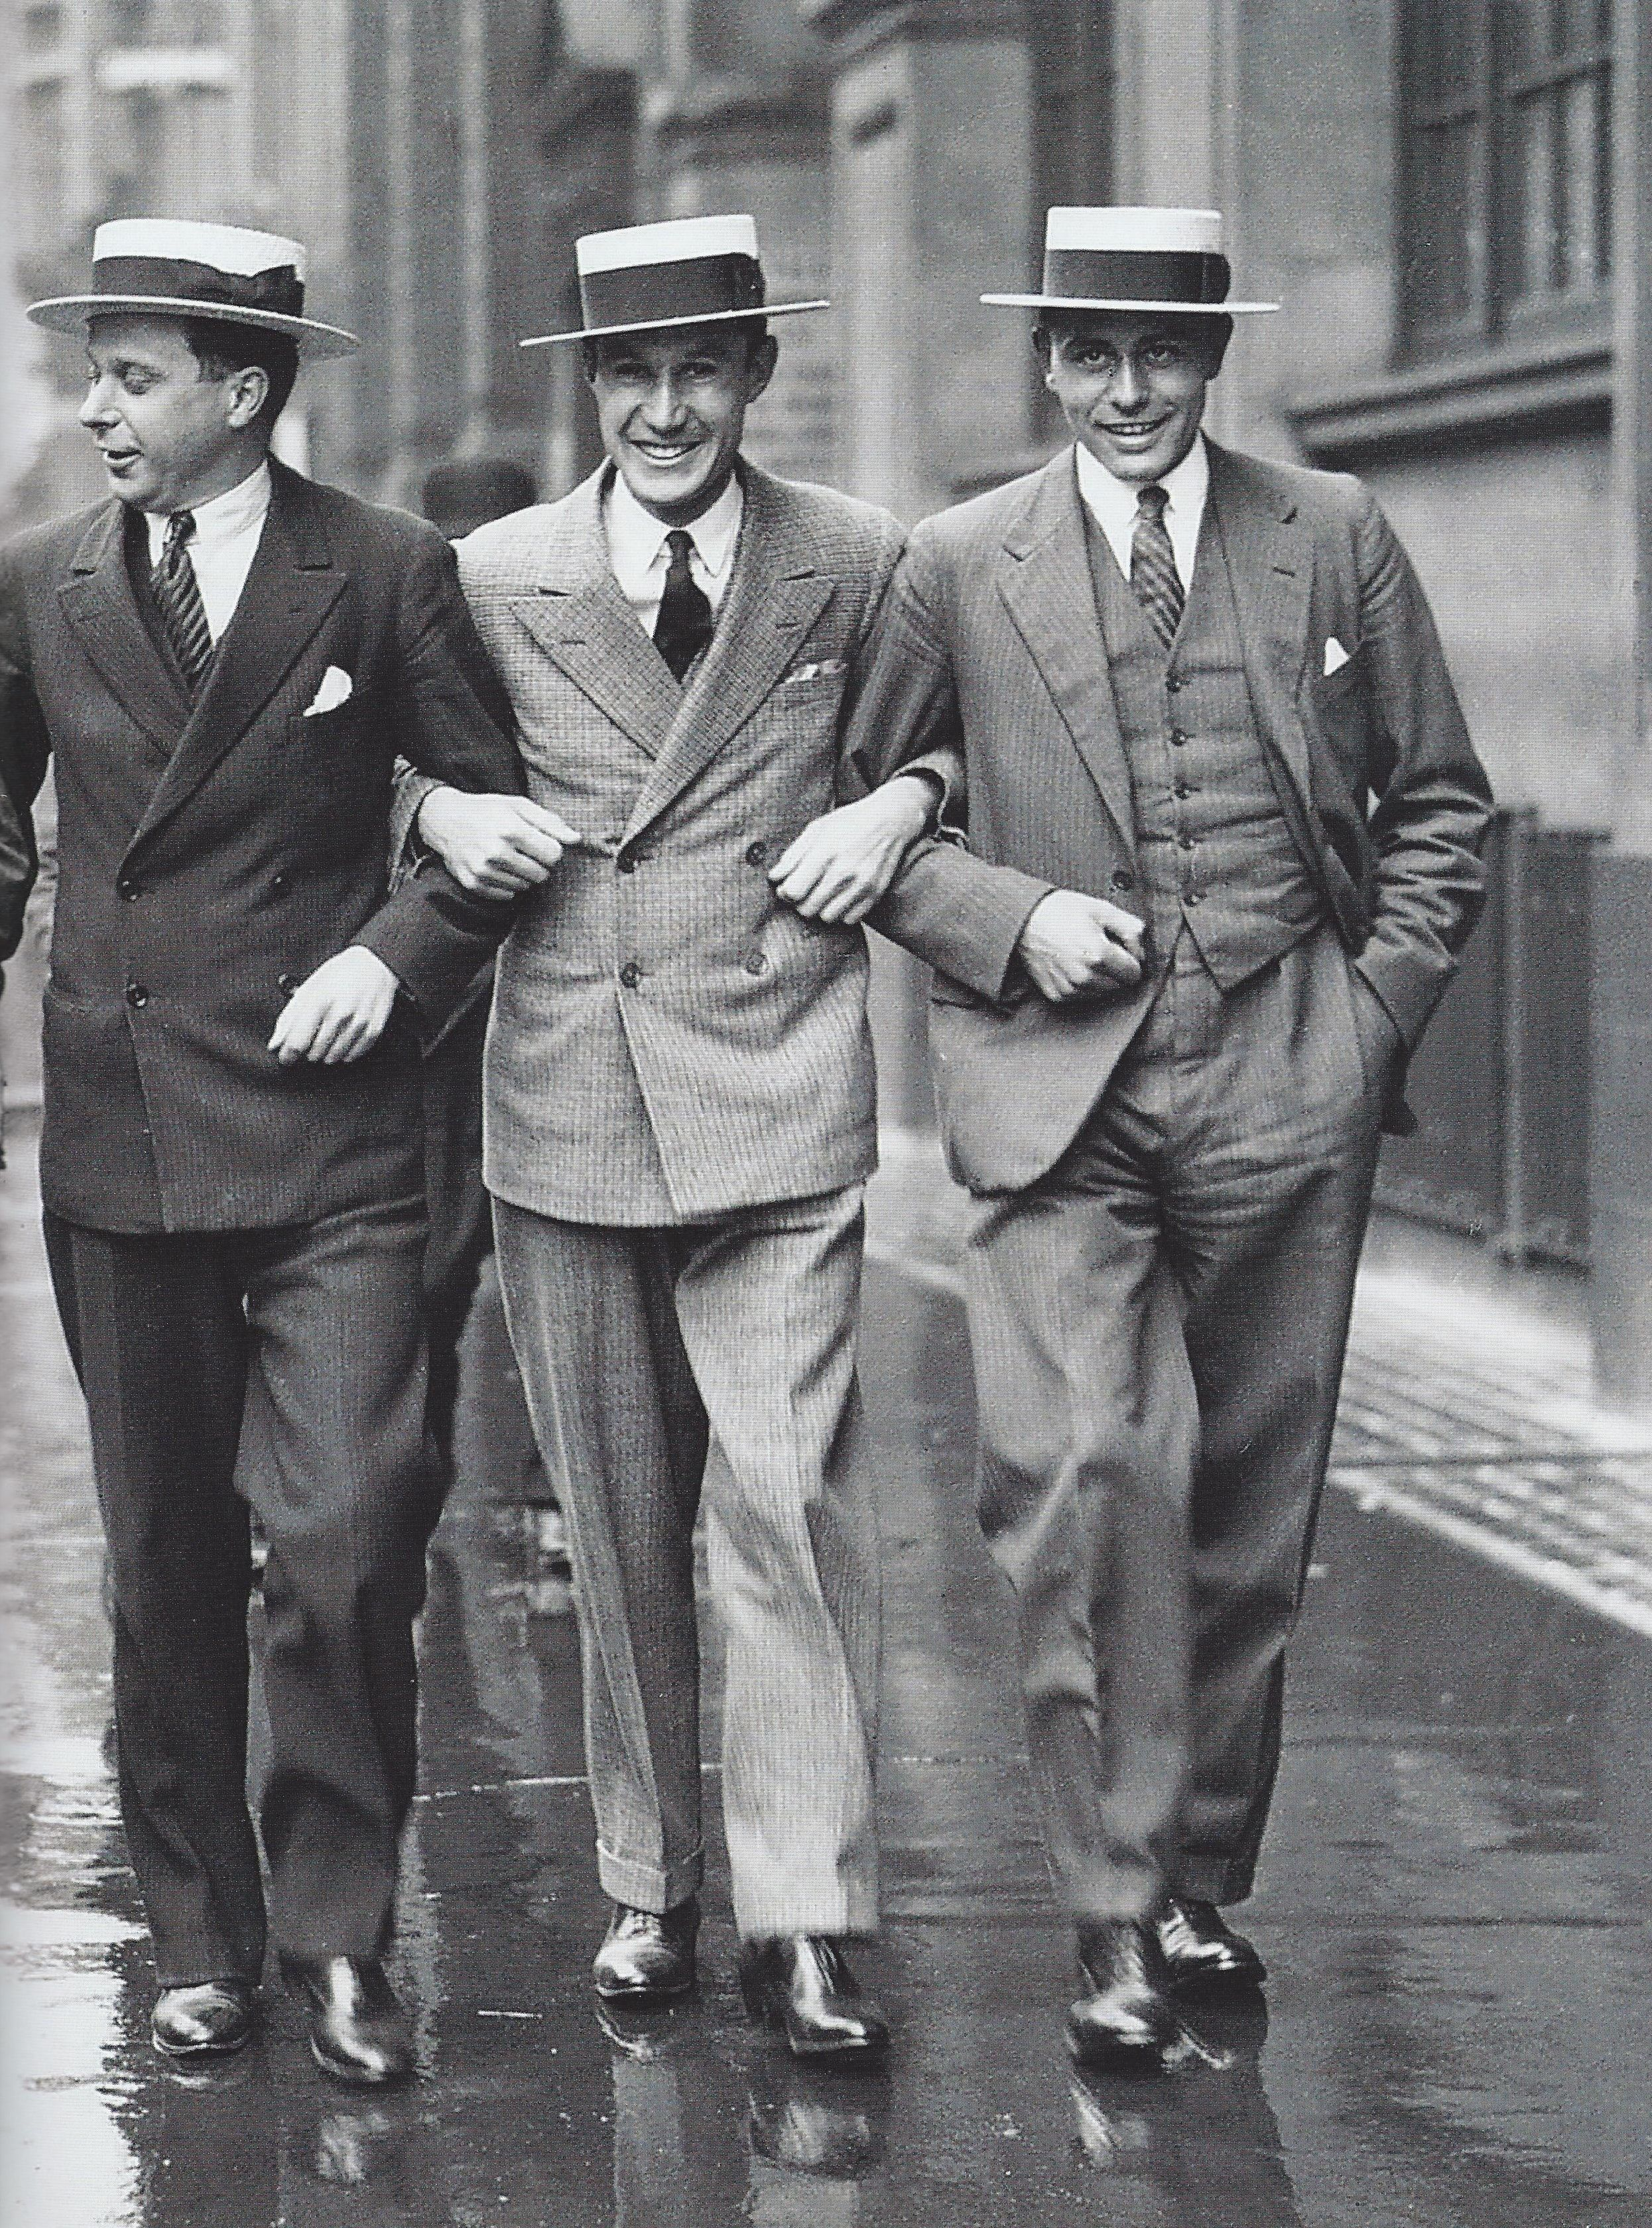 1920s Men S Fashion: Some Fashionable Young Chaps From The 20s